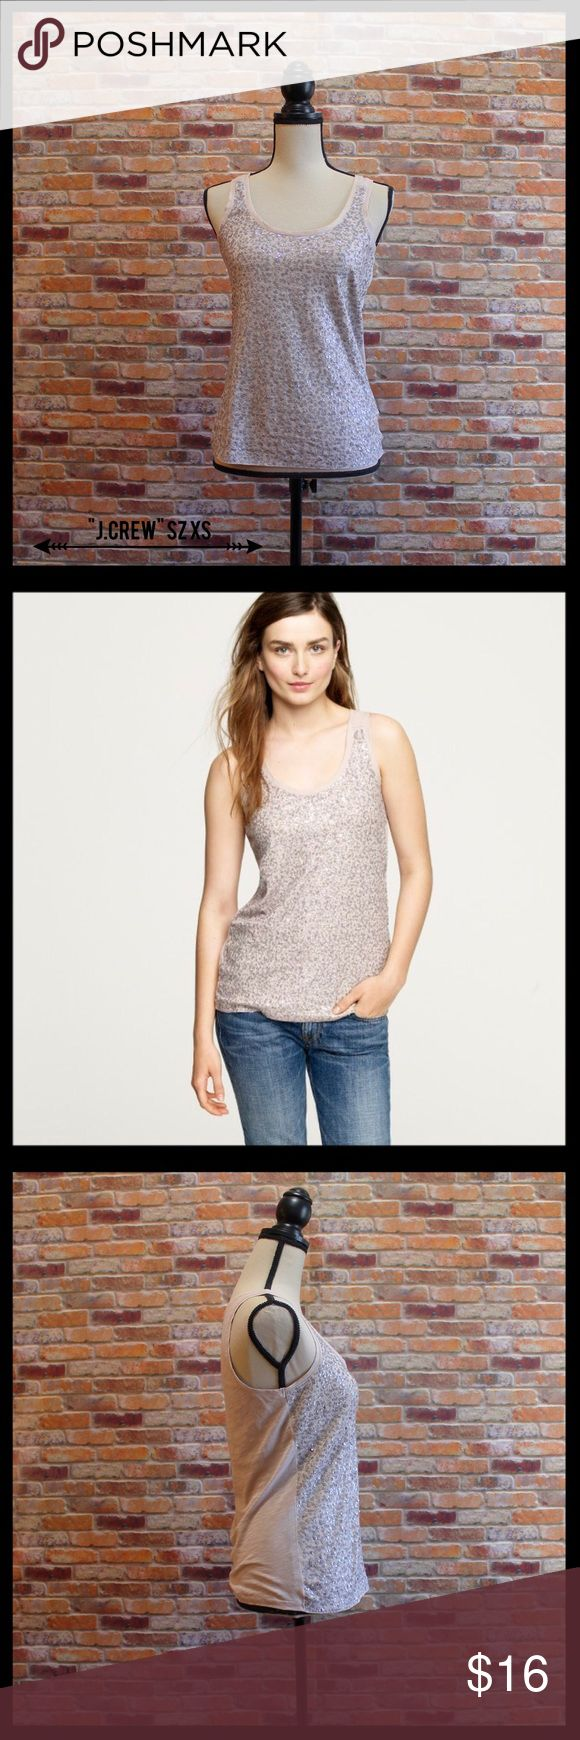 """J. Crew Sequin Tank J. Crew sequin tank in an XS.  Front is covered in sequins.  Back is cotton.  Measures 17"""" from armpit to armpit and 25"""" in length.  100% cotton. In like new condition. J. Crew Tops Tank Tops"""